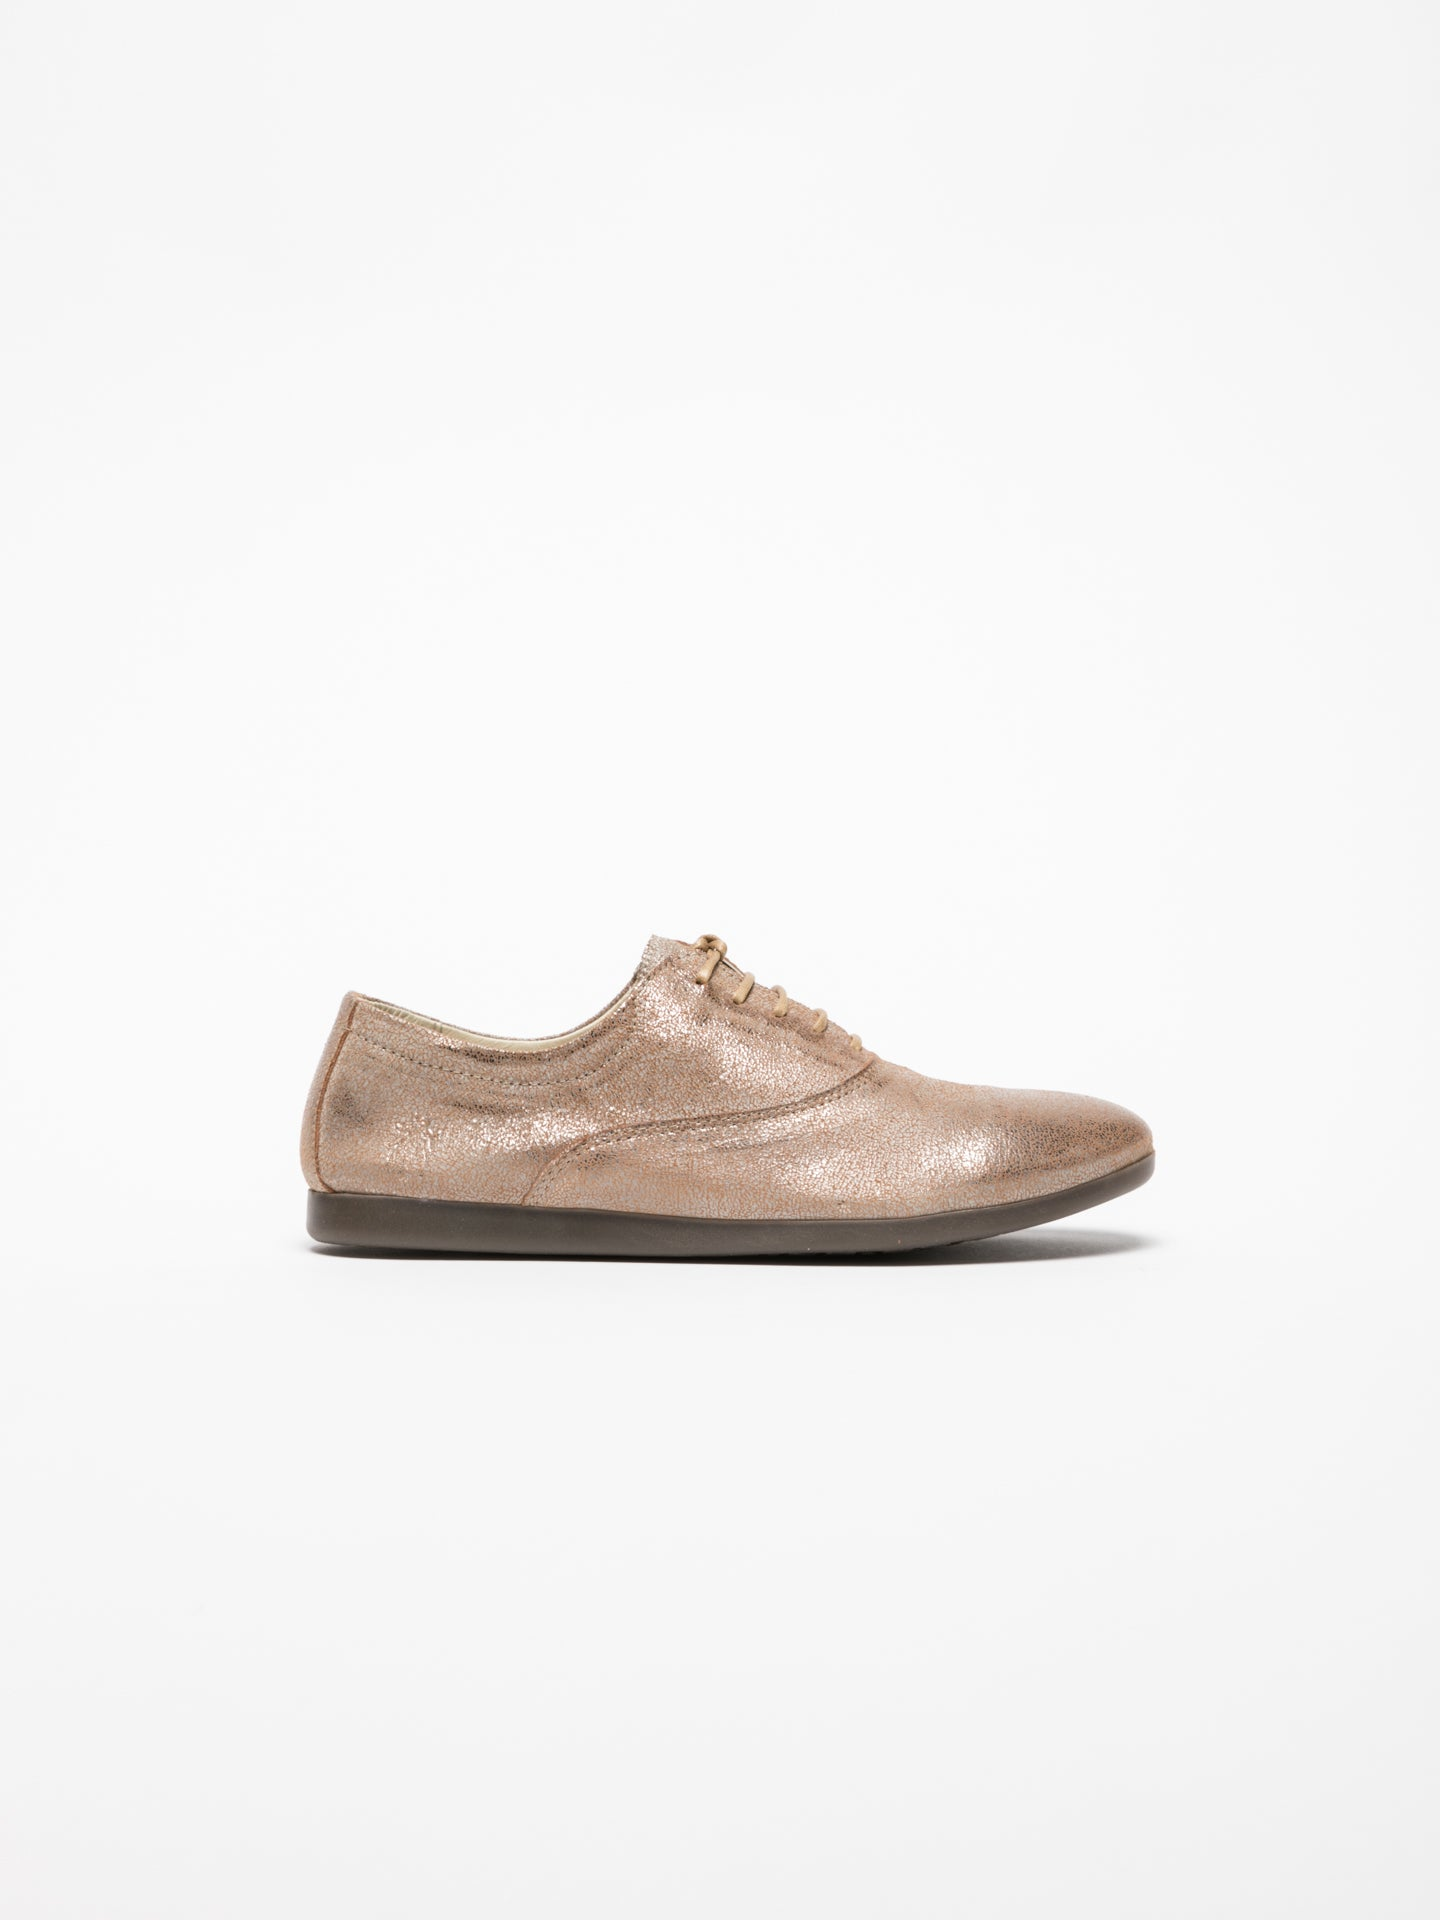 Fly London Schuhe im Oxford-Stil in Camel